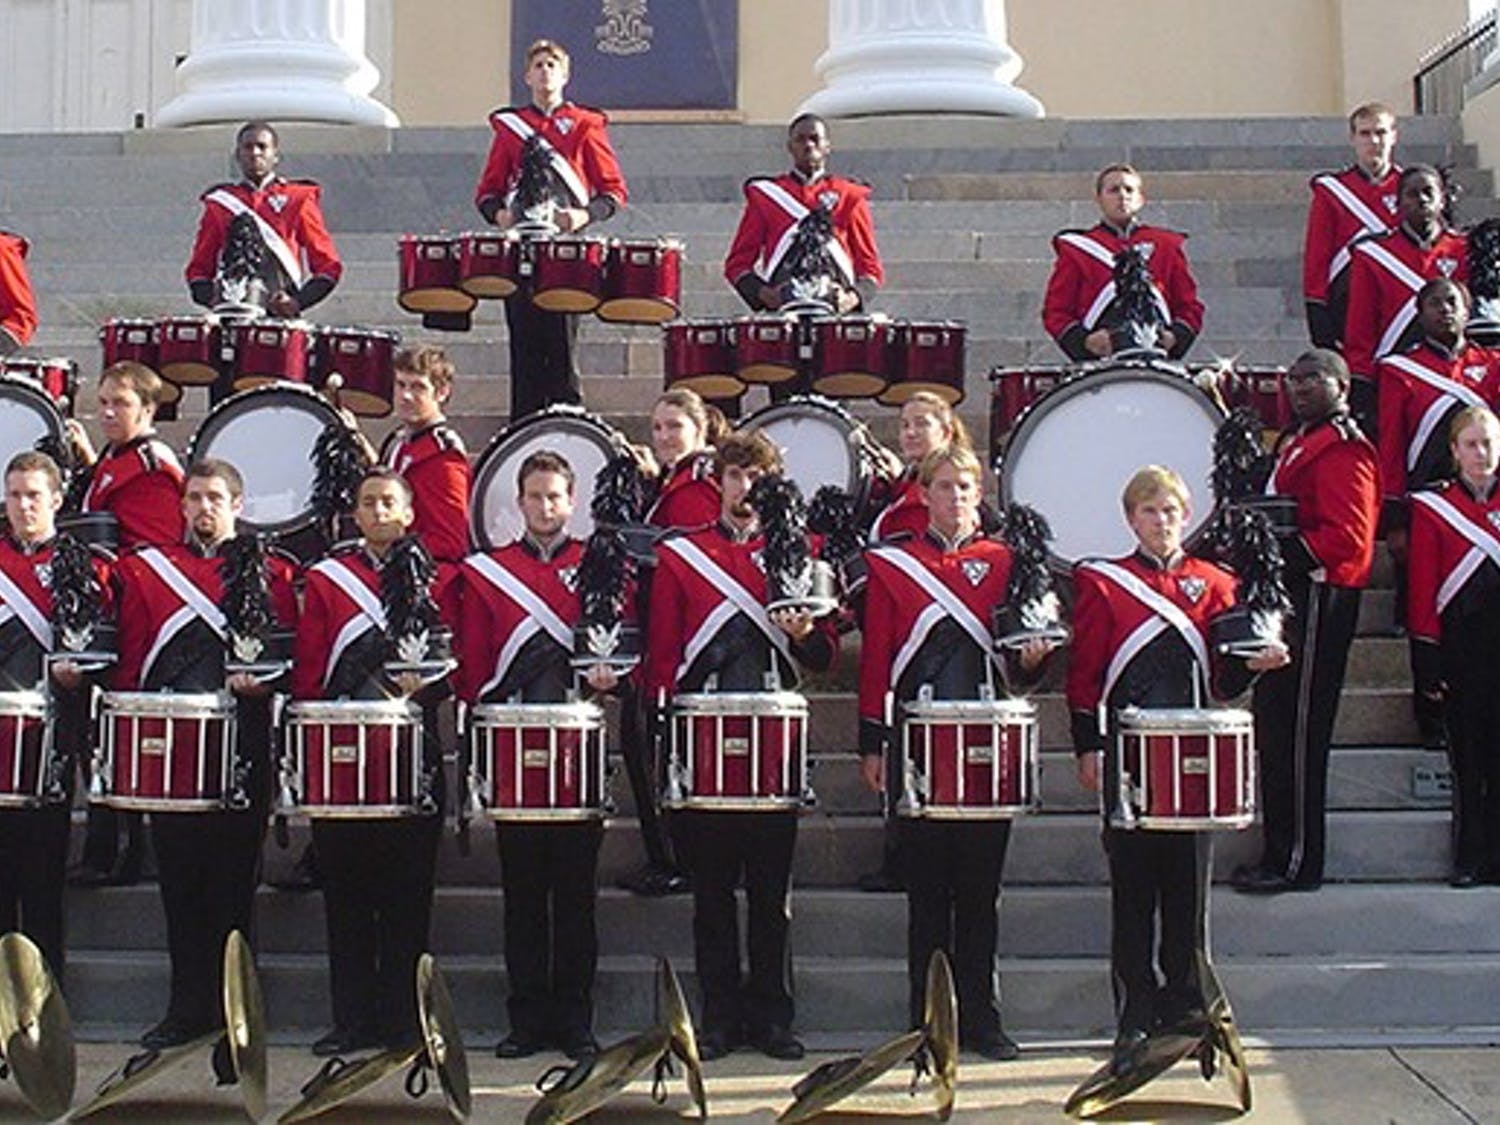 The 2004 Carolina Band drumline stands together at the steps of the Longstreet Theatre.